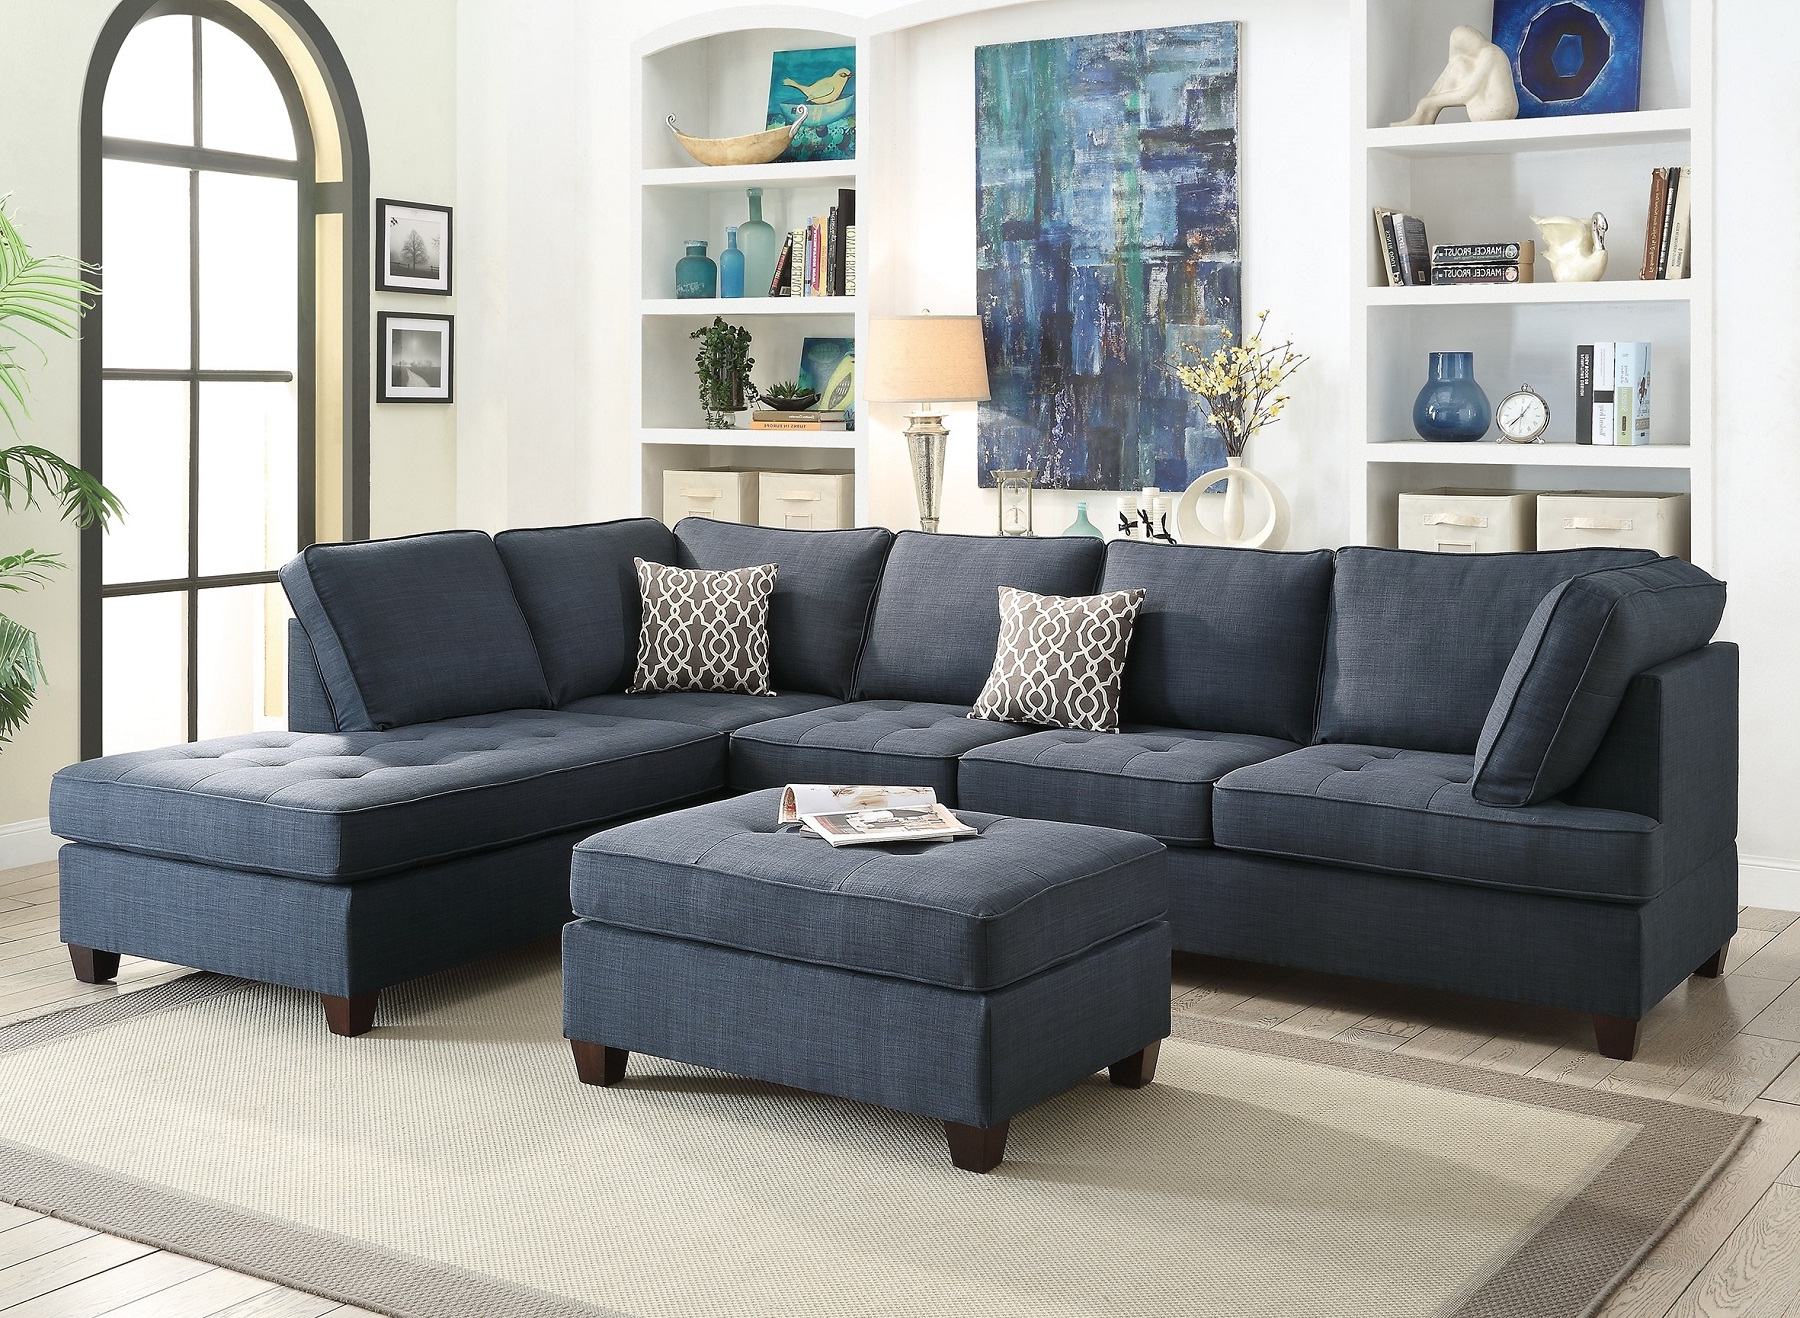 4Pc Crowningshield Contemporary Chaise Sectional Sofas With Famous Blue Sectional Sofa Chaise Poundex #F (View 11 of 25)